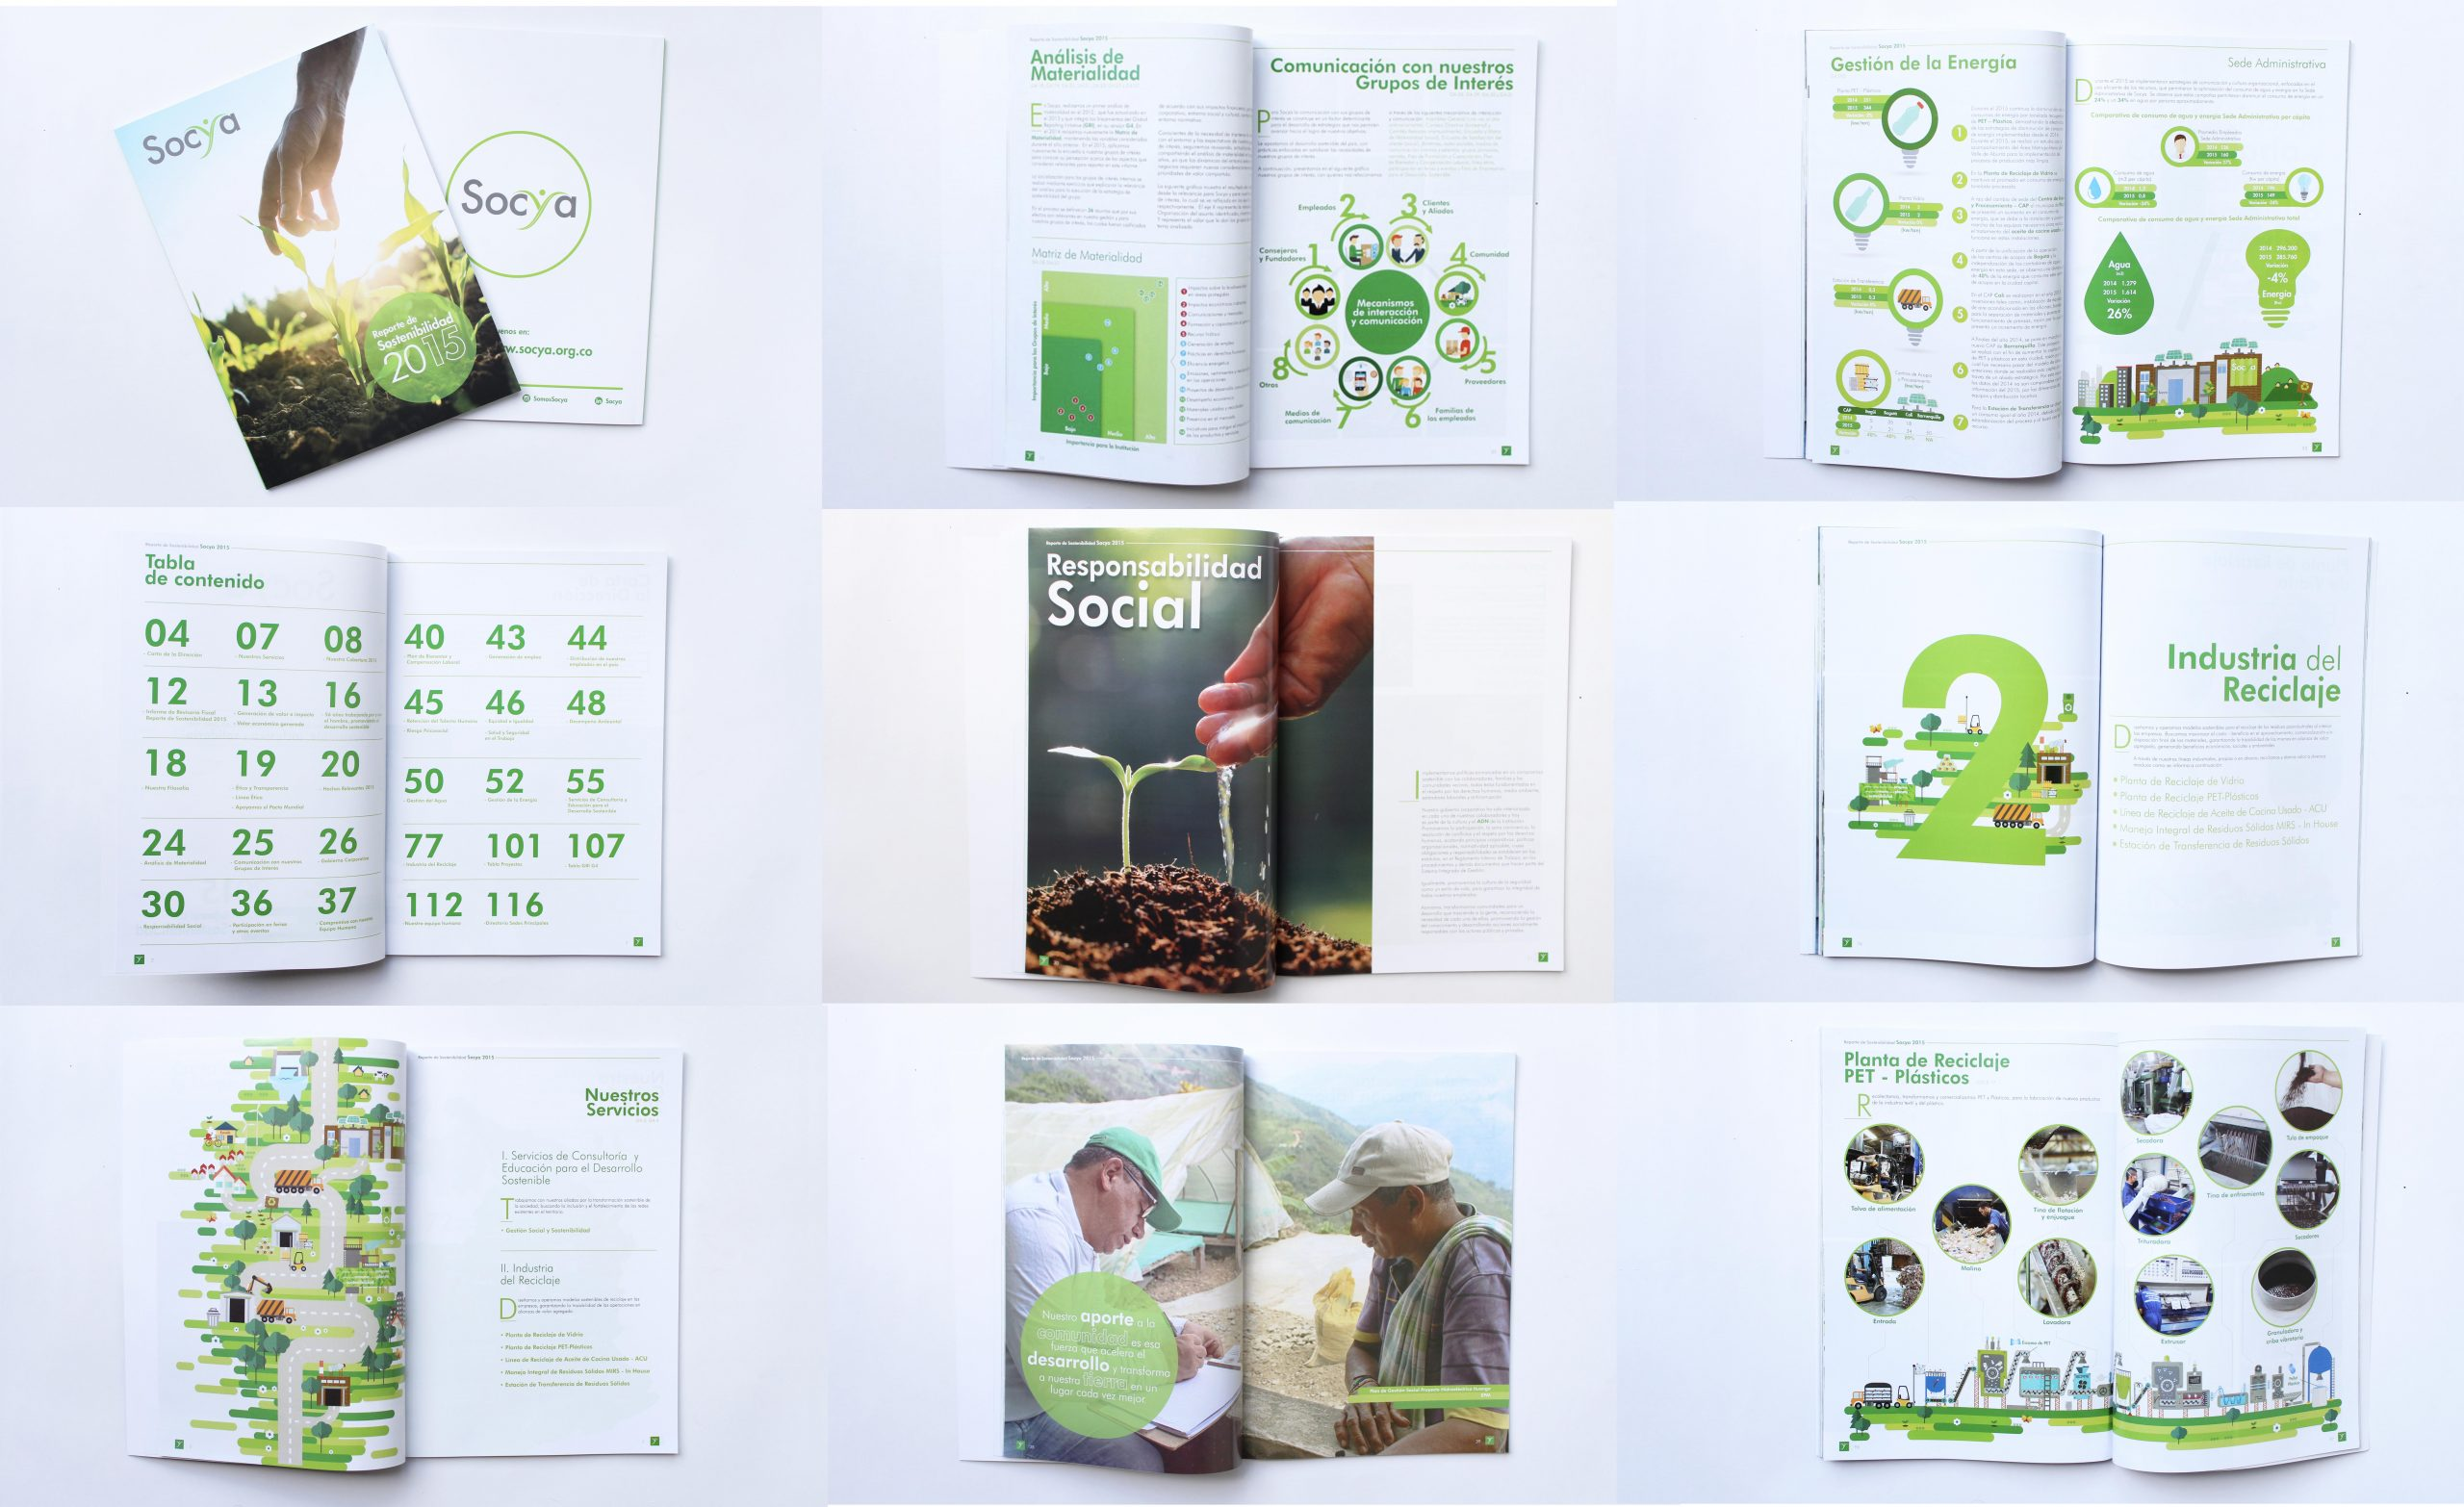 Sustainability Report Socya 2015